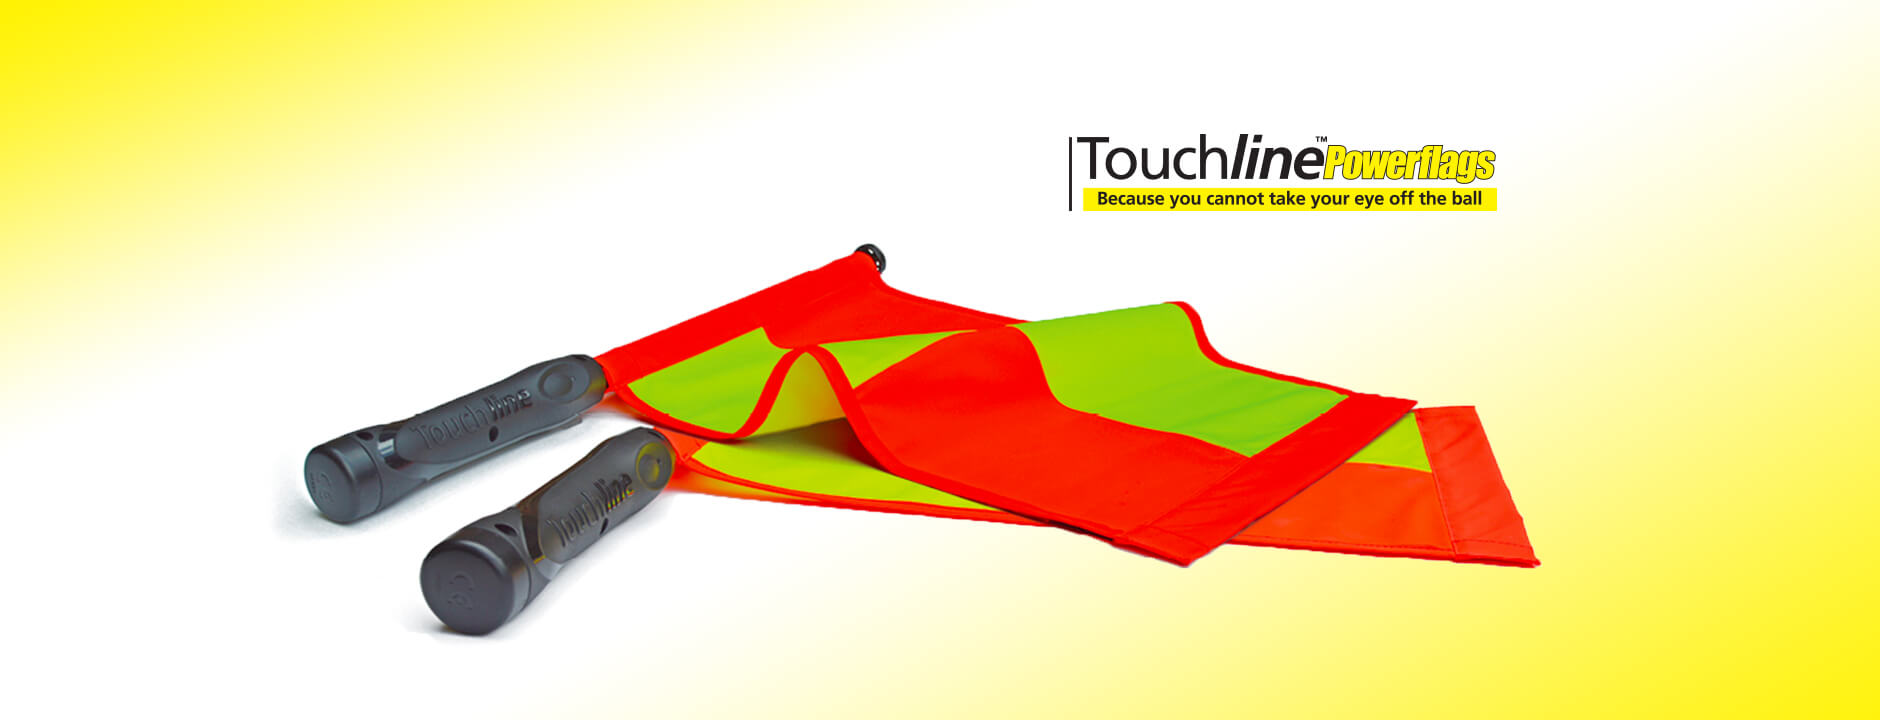 Touchline PowerFlags: State of the art electronic flags for soccer referees!